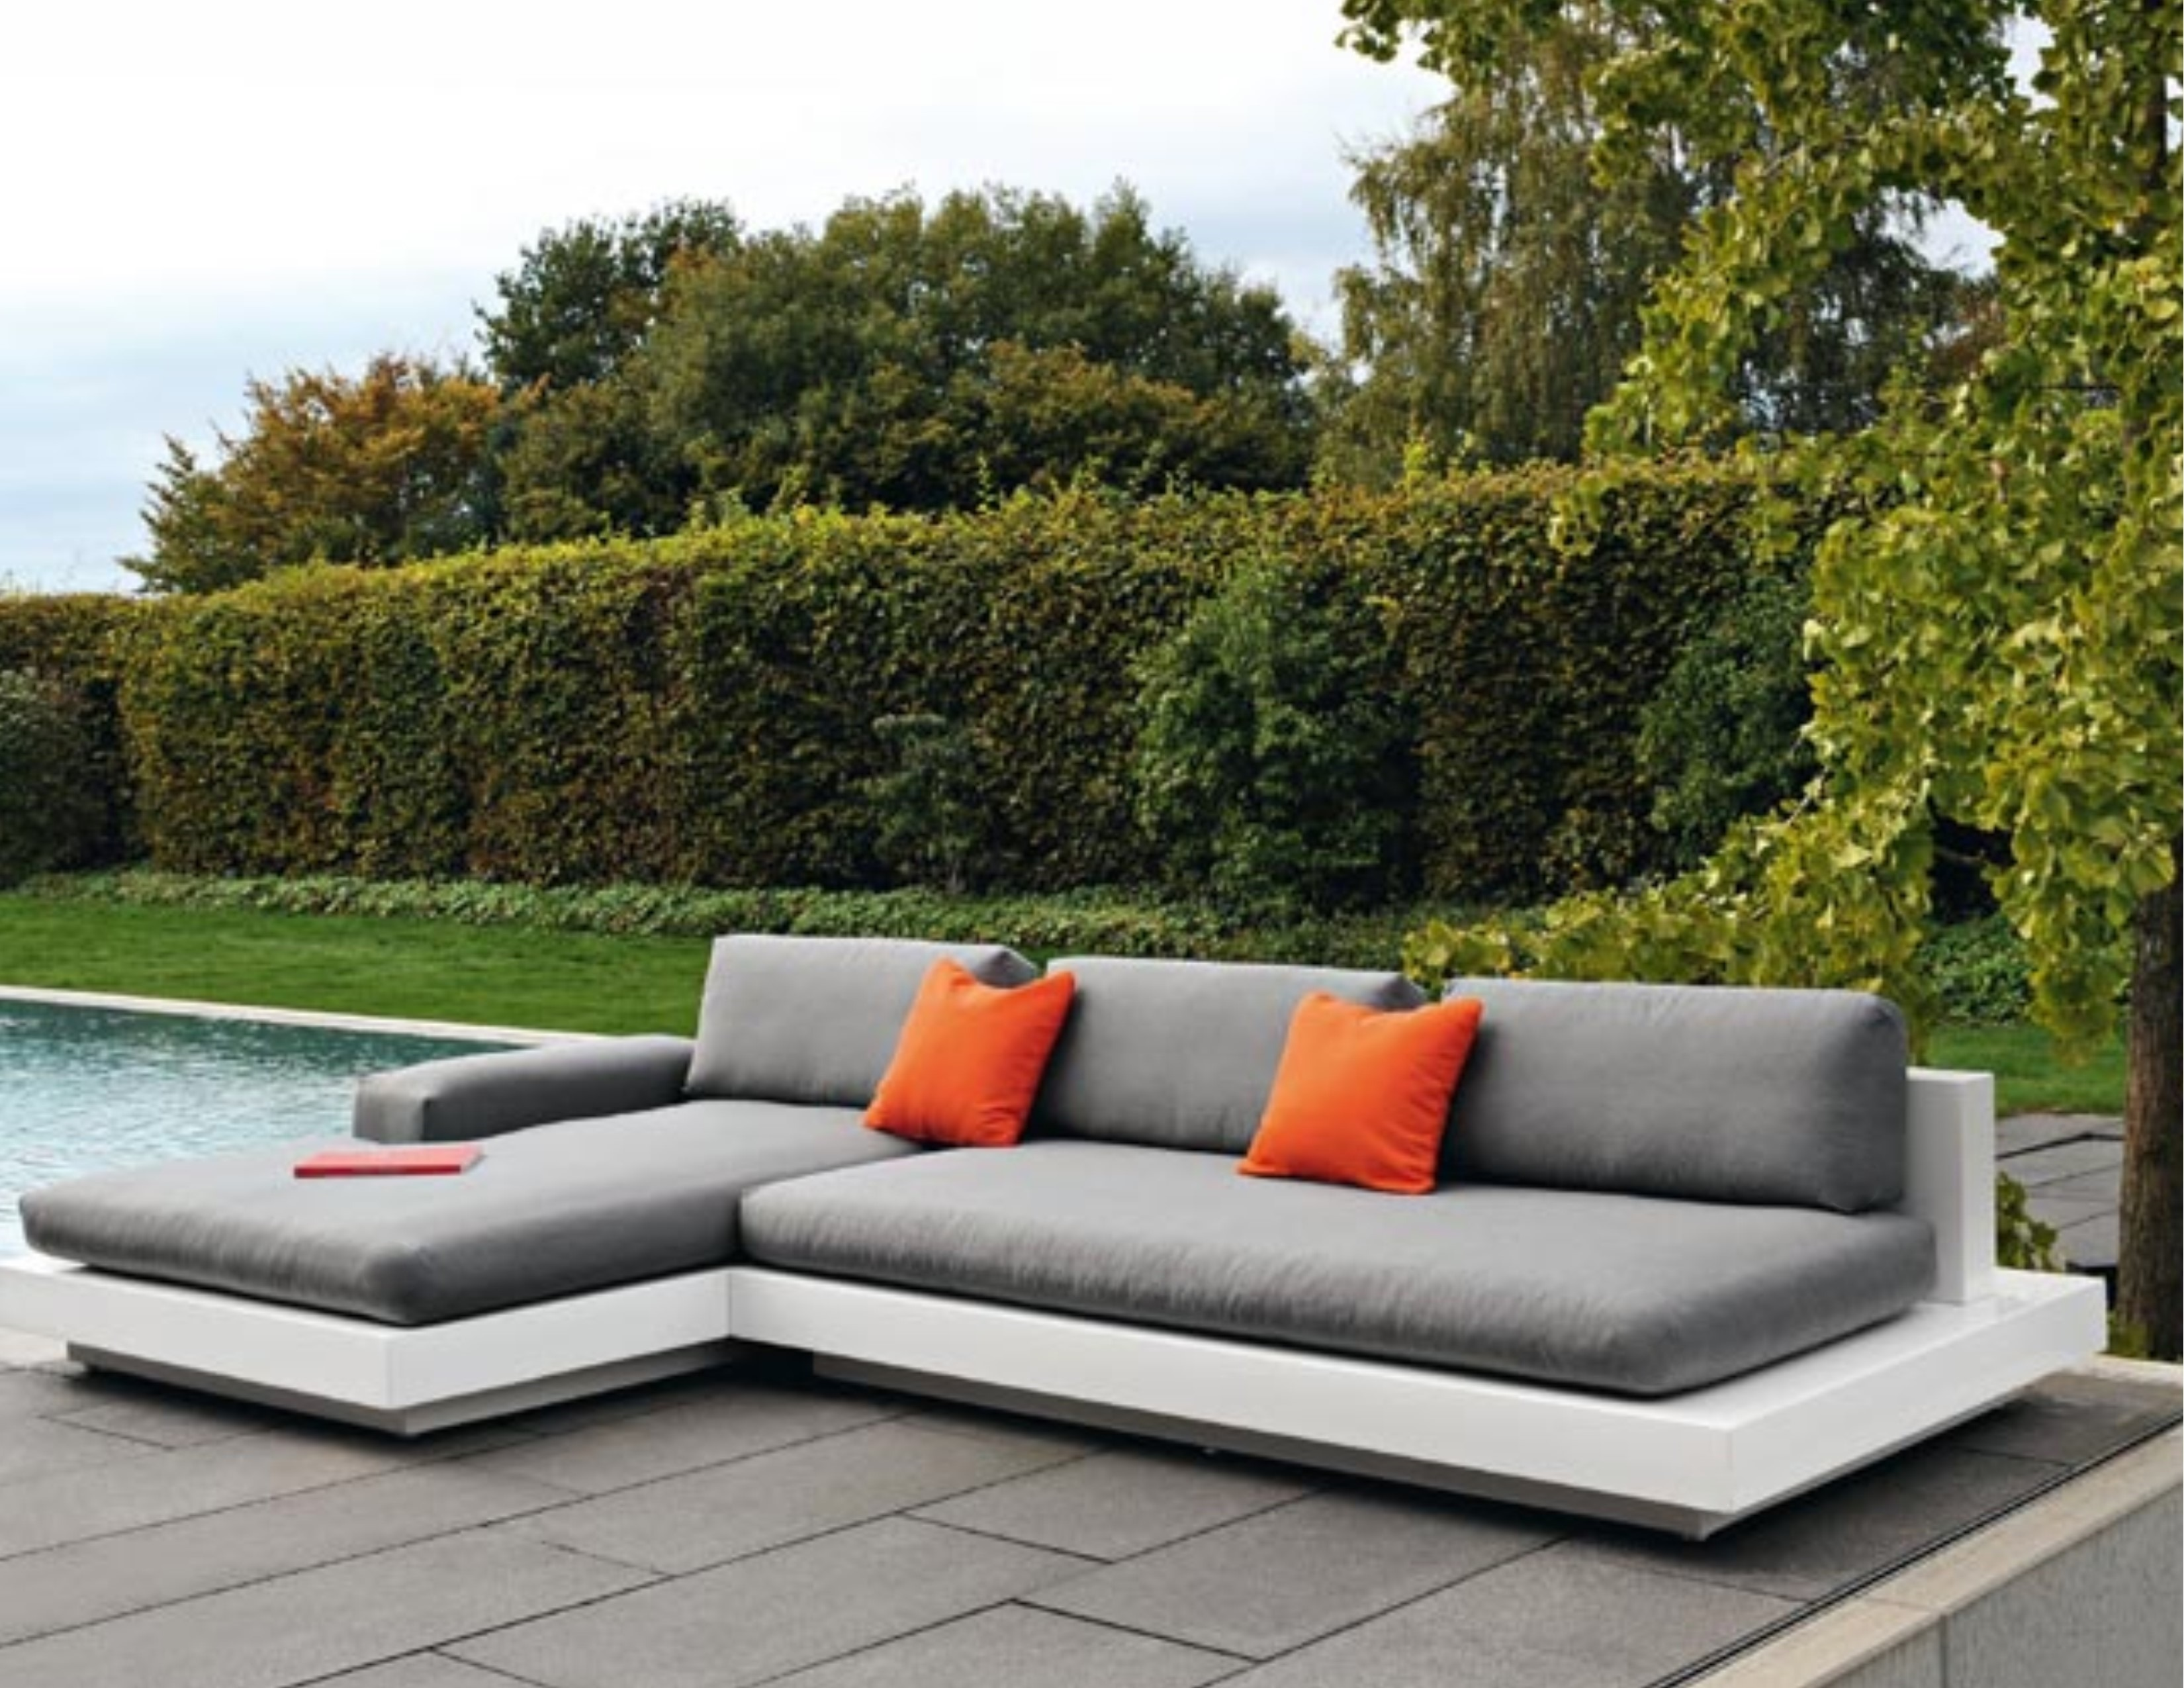 air platform daybed chaise lounge led lights by rausch couture outdoor